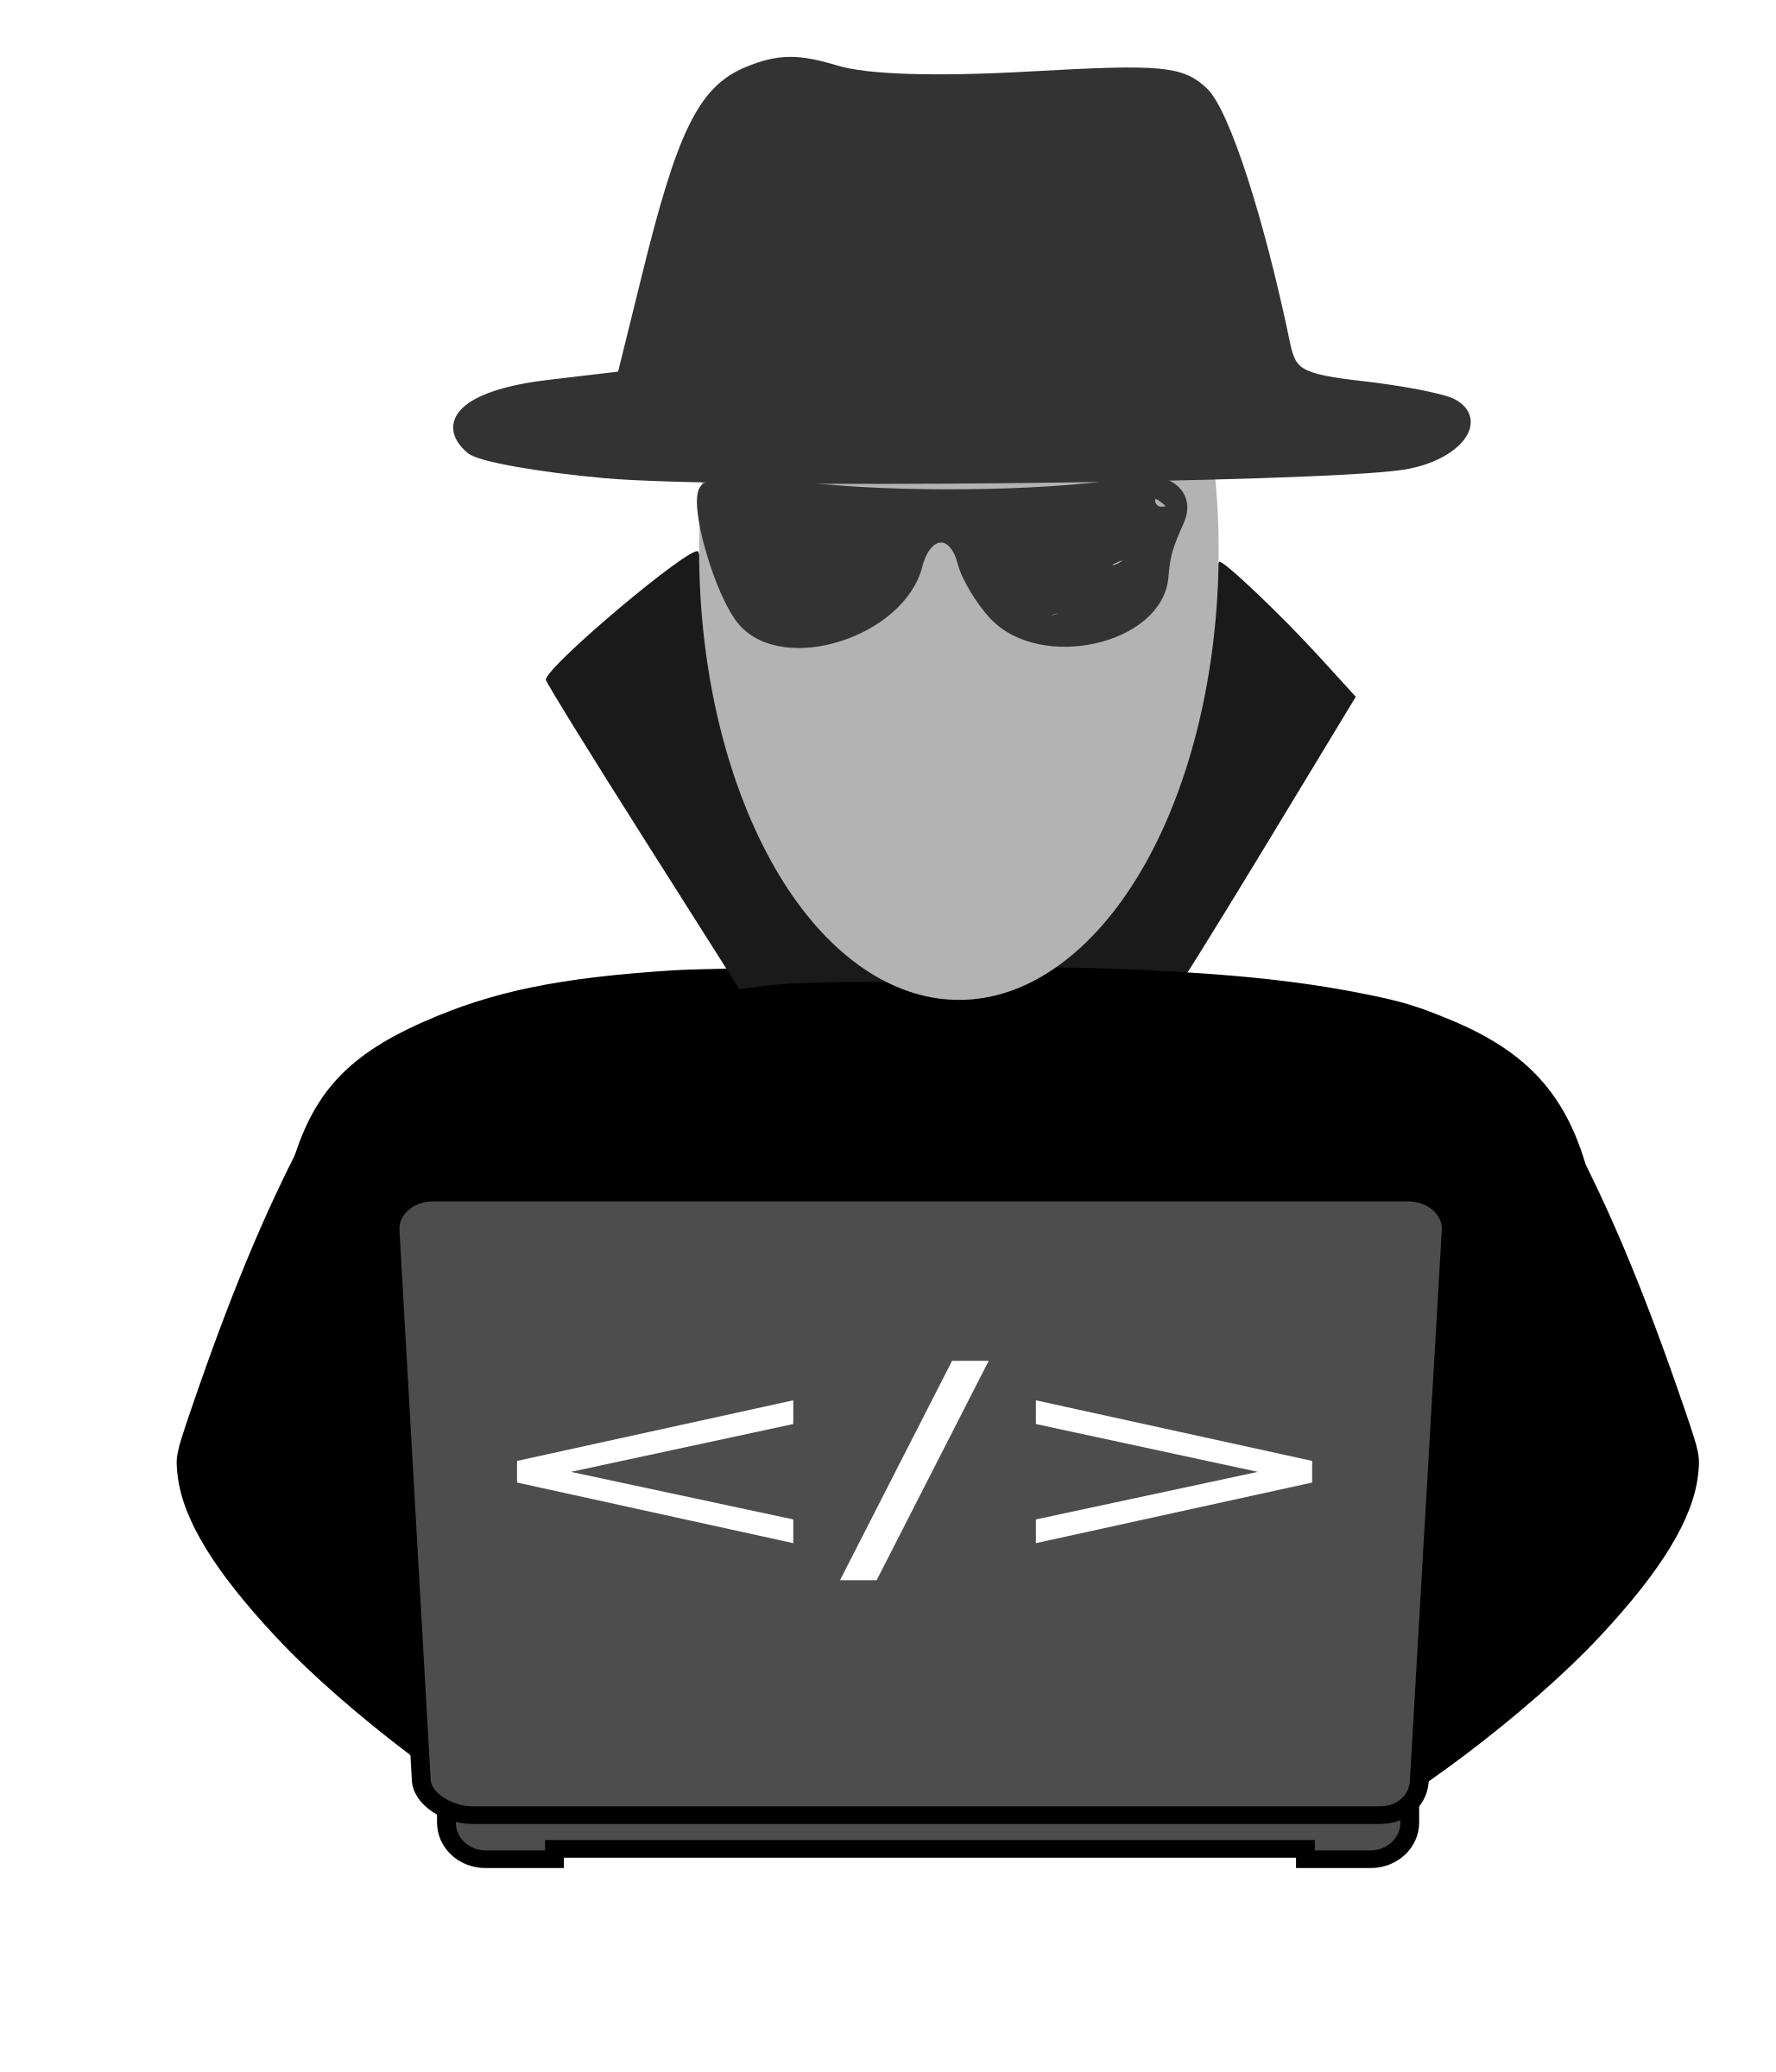 spy clipart computer security